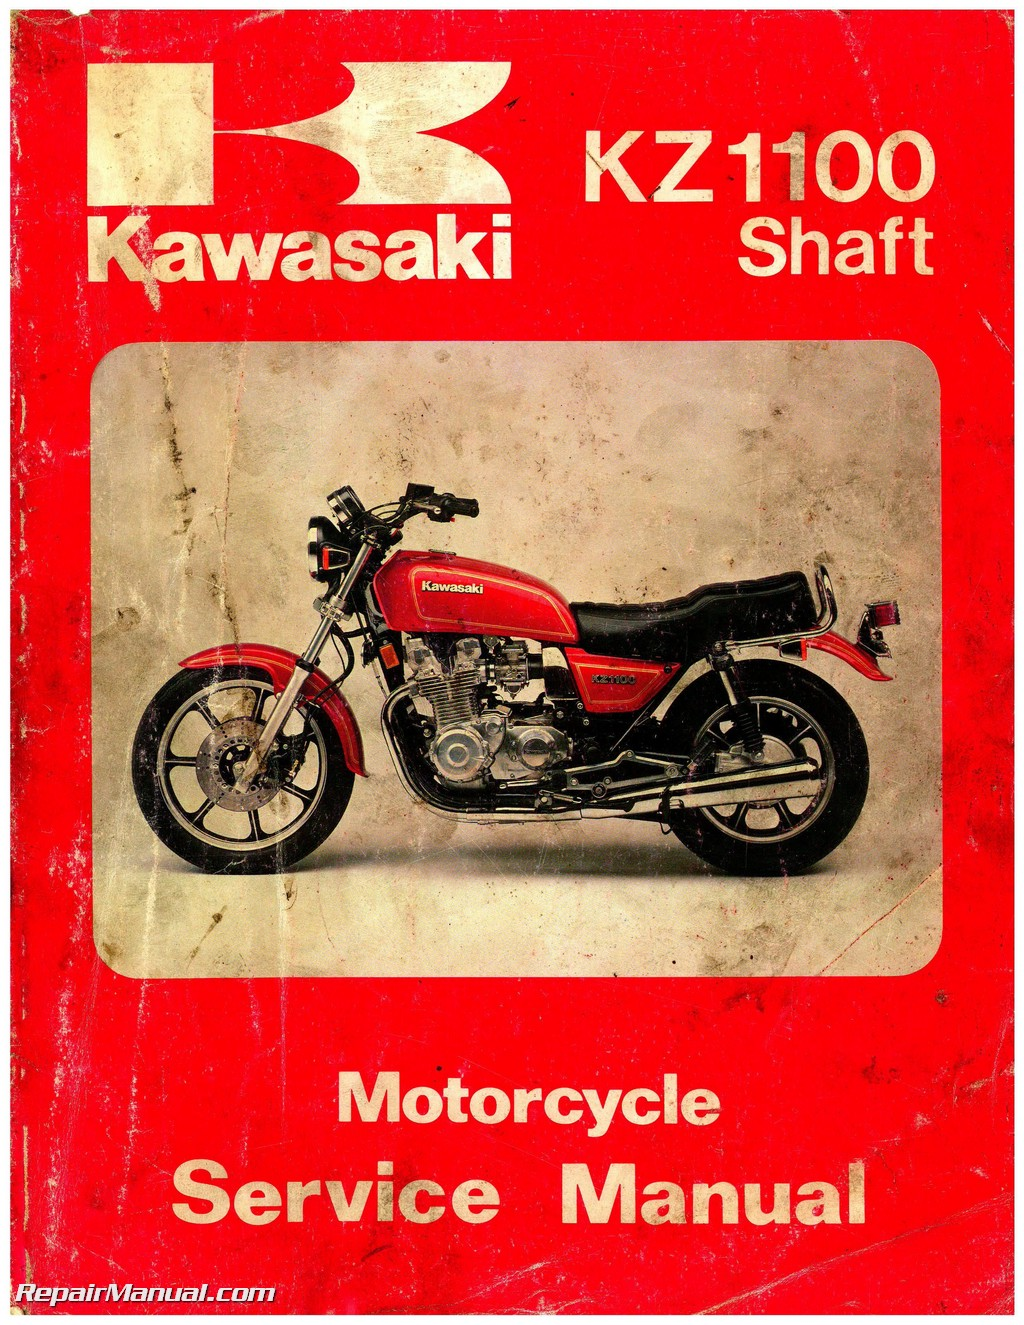 wiring diagram for 1984 zn1100 not lossing wiring diagram • kawasaki 1981 1983 kz1100 1984 1985 zn1100 shaft drive motorcycle rh repairmanual com intellichlor transformer wiring diagram for wiring diagram fo